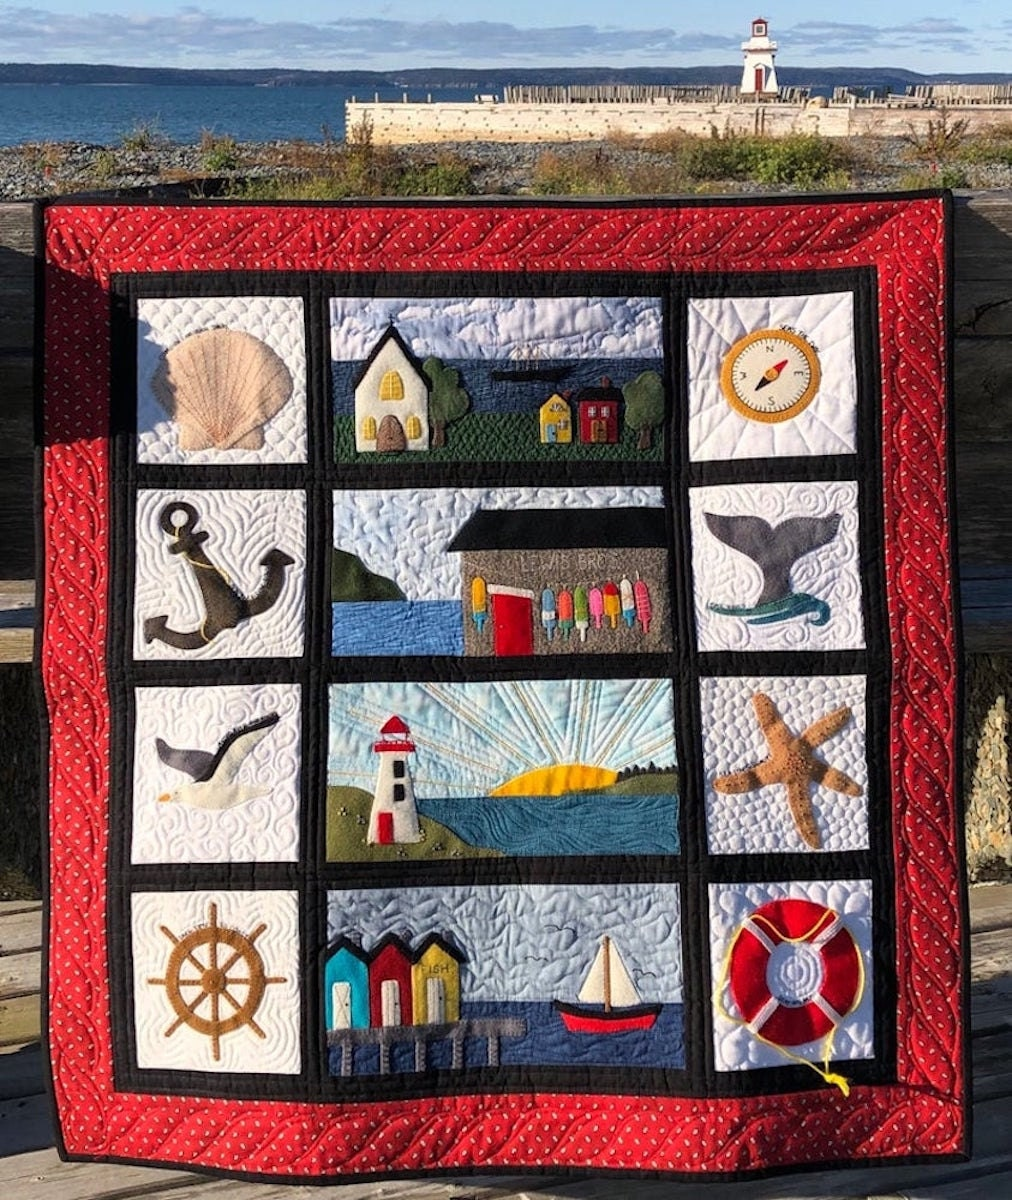 An appliqué quilt pattern from Etsy